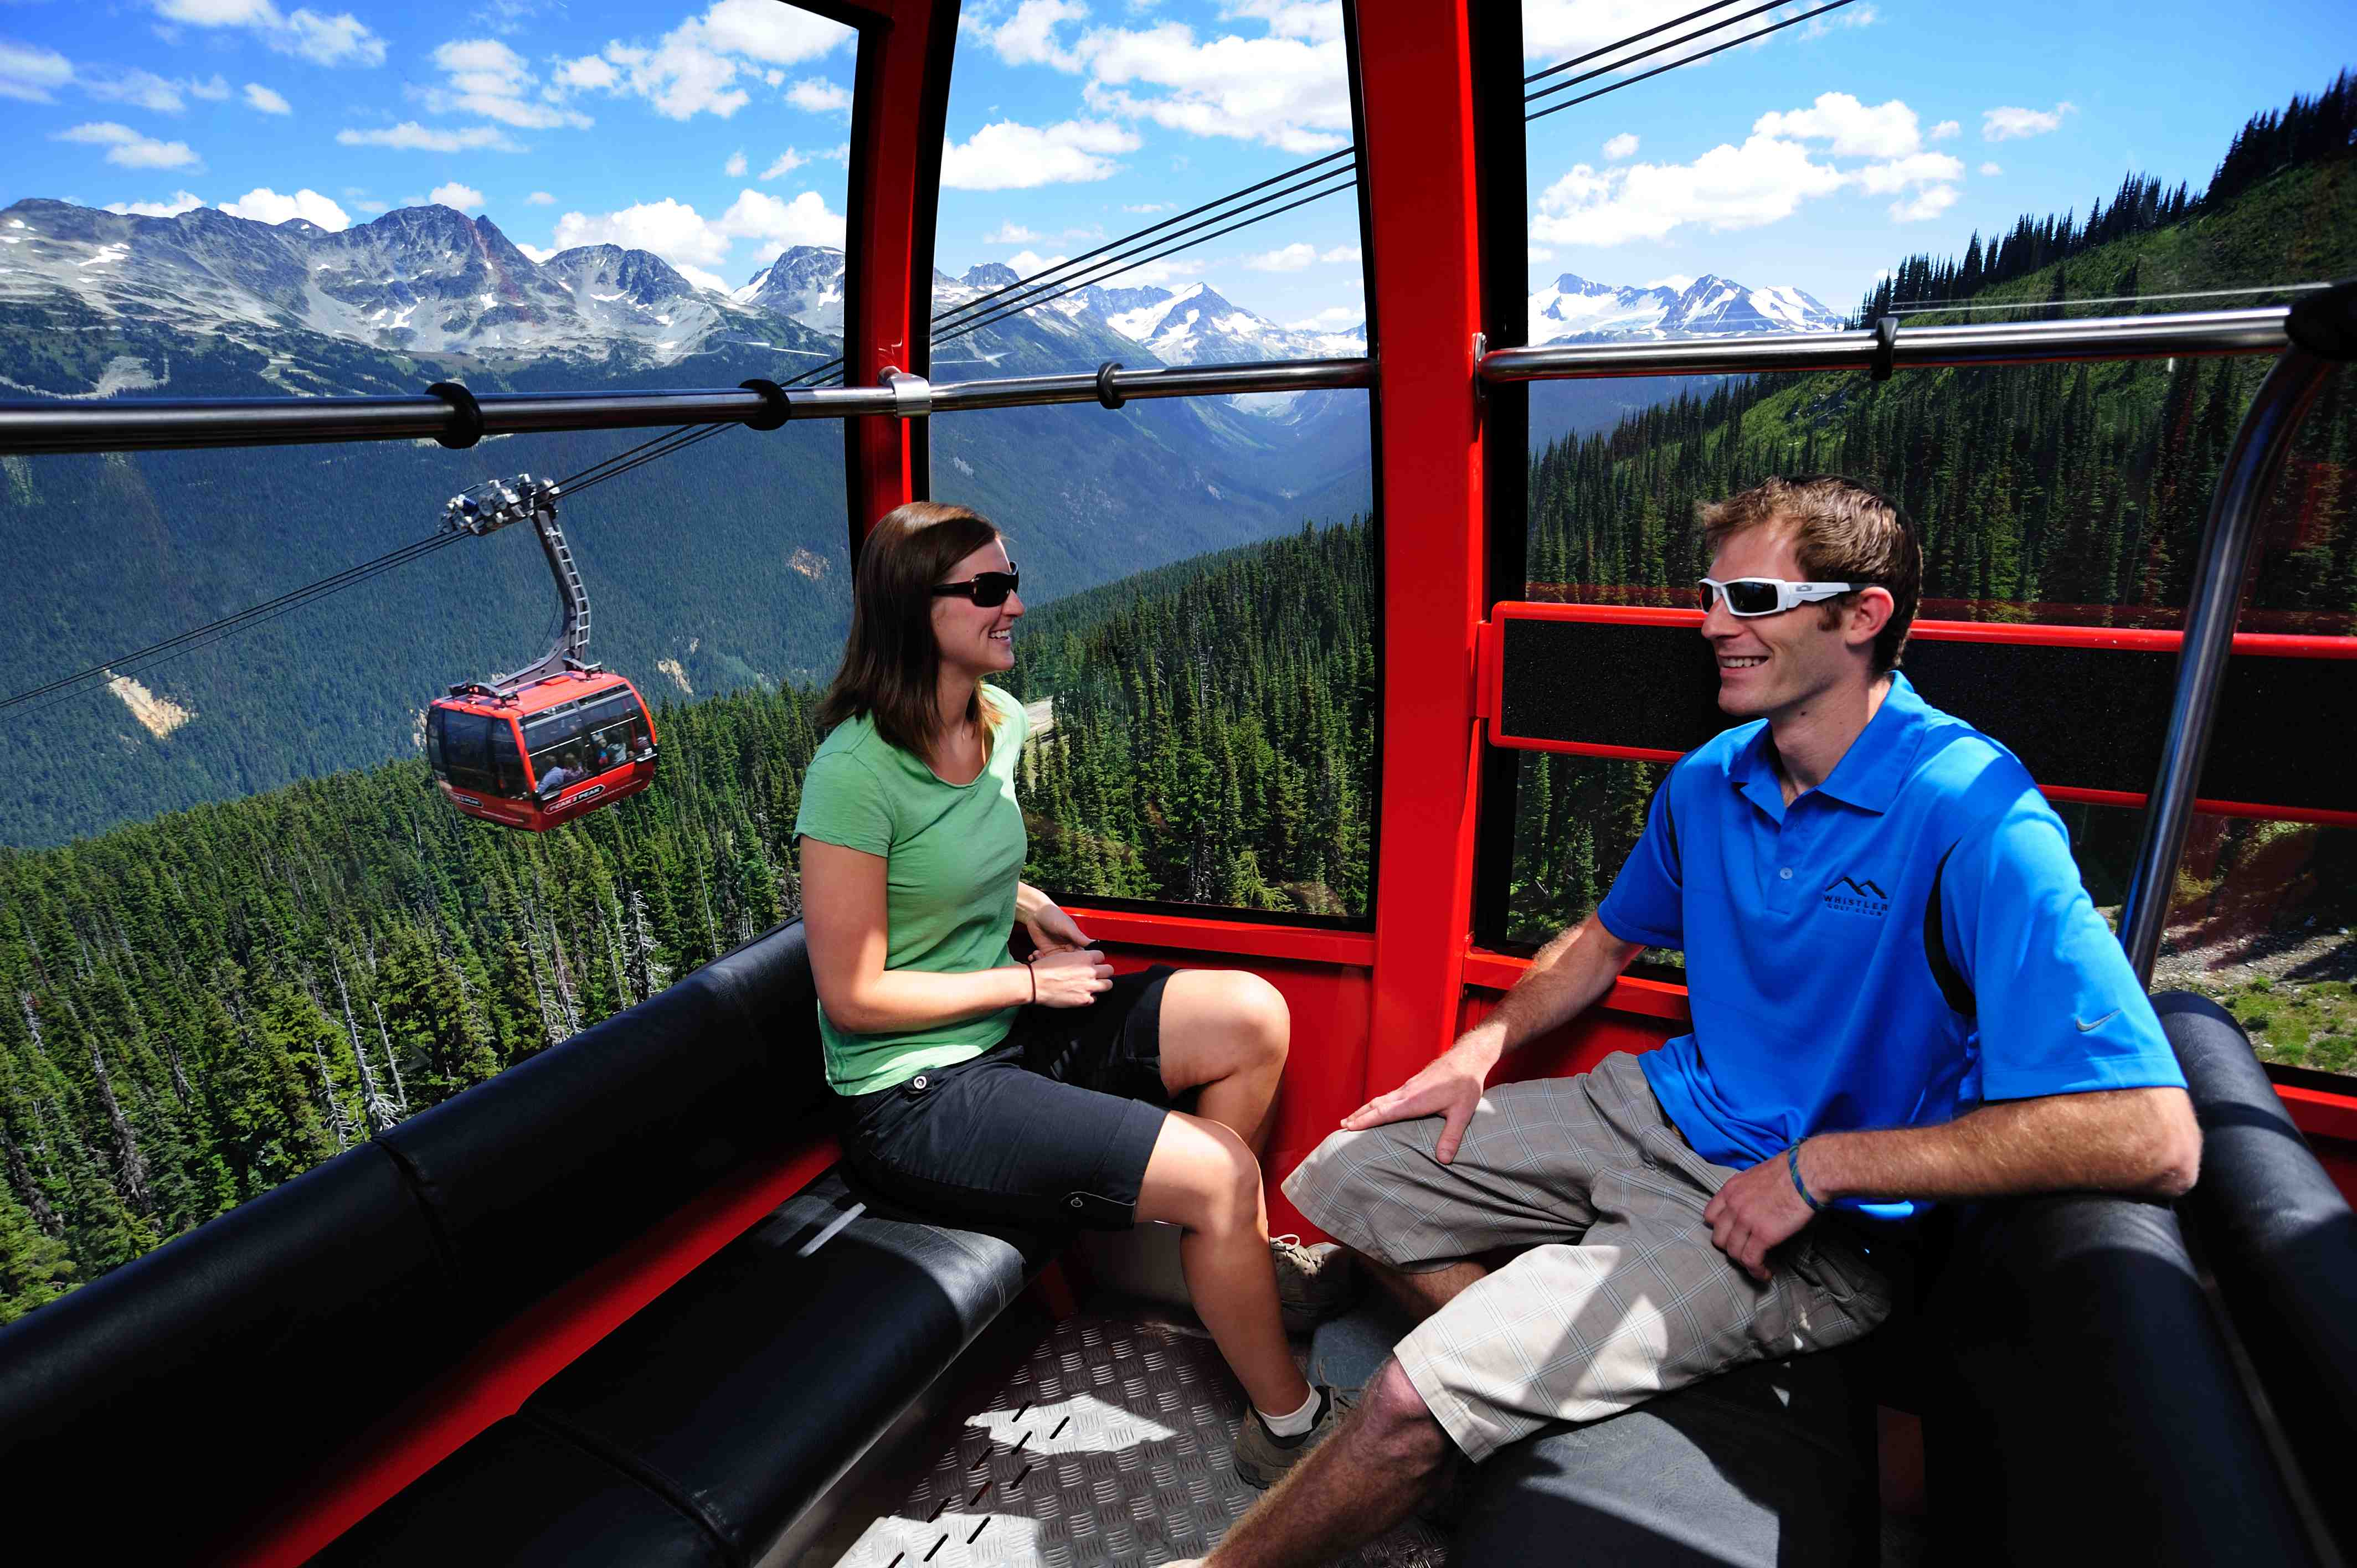 Experience the record-breaking Peak 2 Peak gondola in Whistler (EnjoyWhistler.com). Photo credit: Tourism Whistler